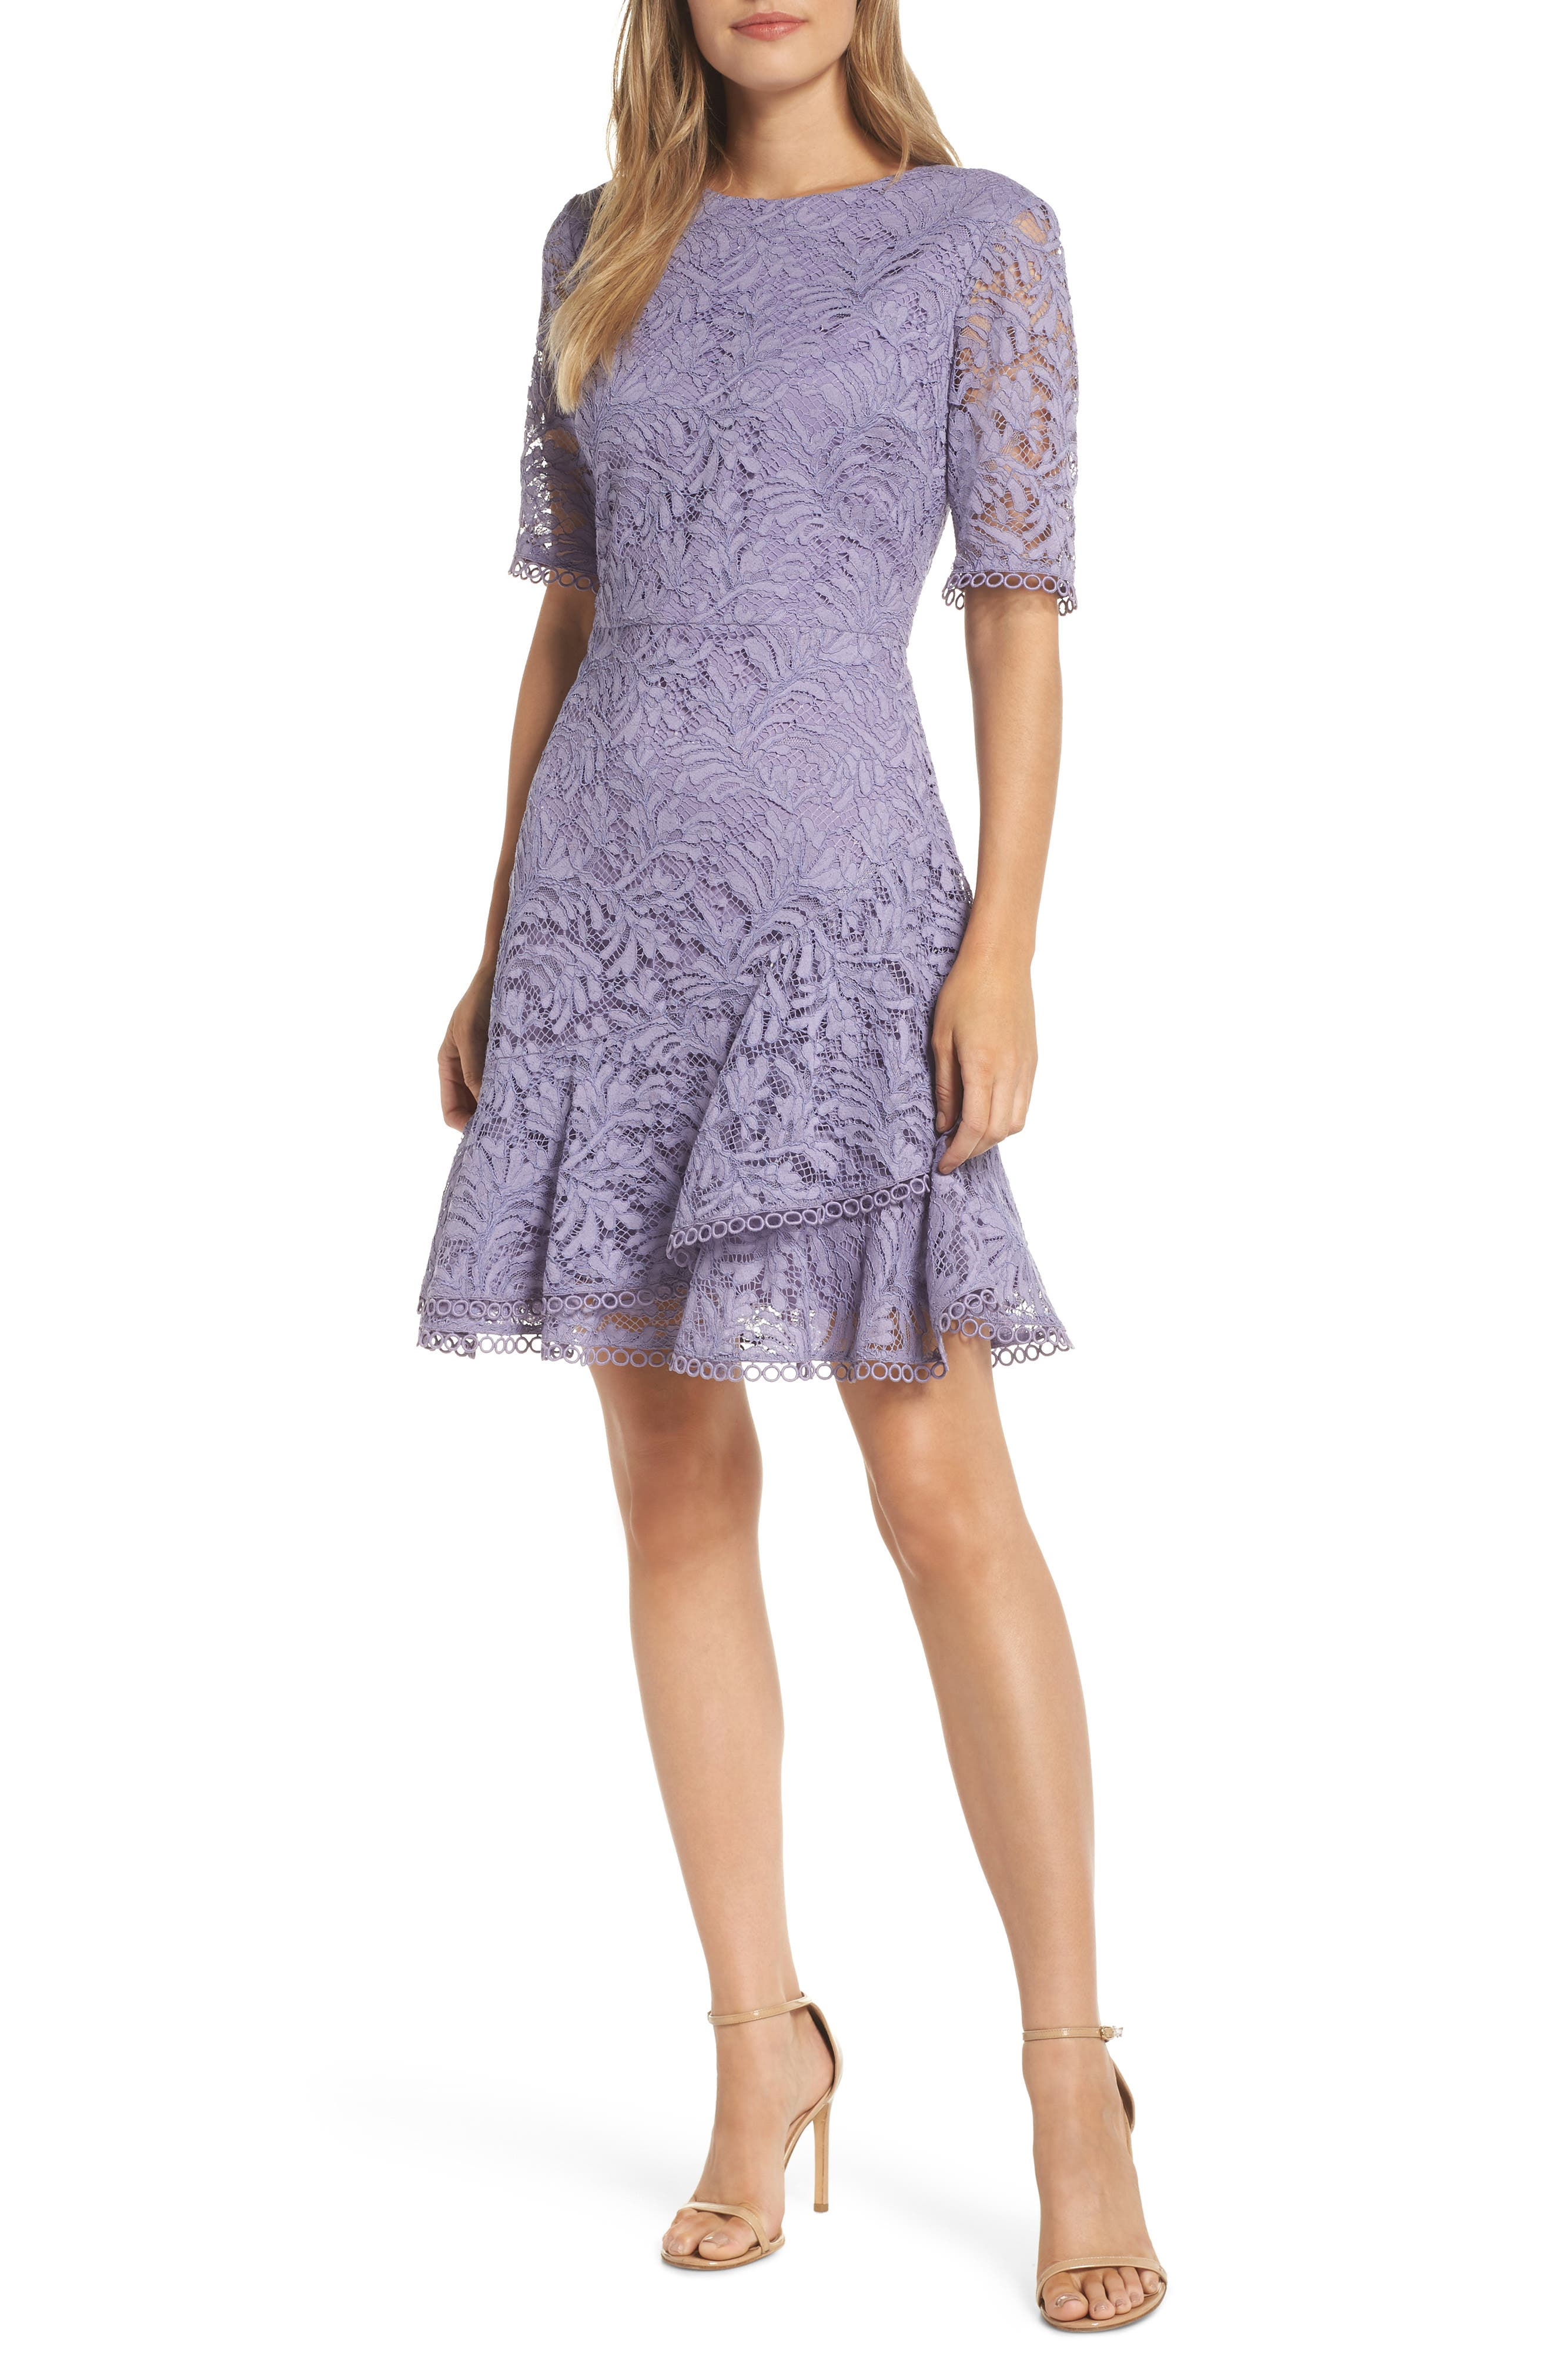 VINCE CAMUTO Asymmetrical Ruffle Lace Fit & Flare Dress, Main, color, 524